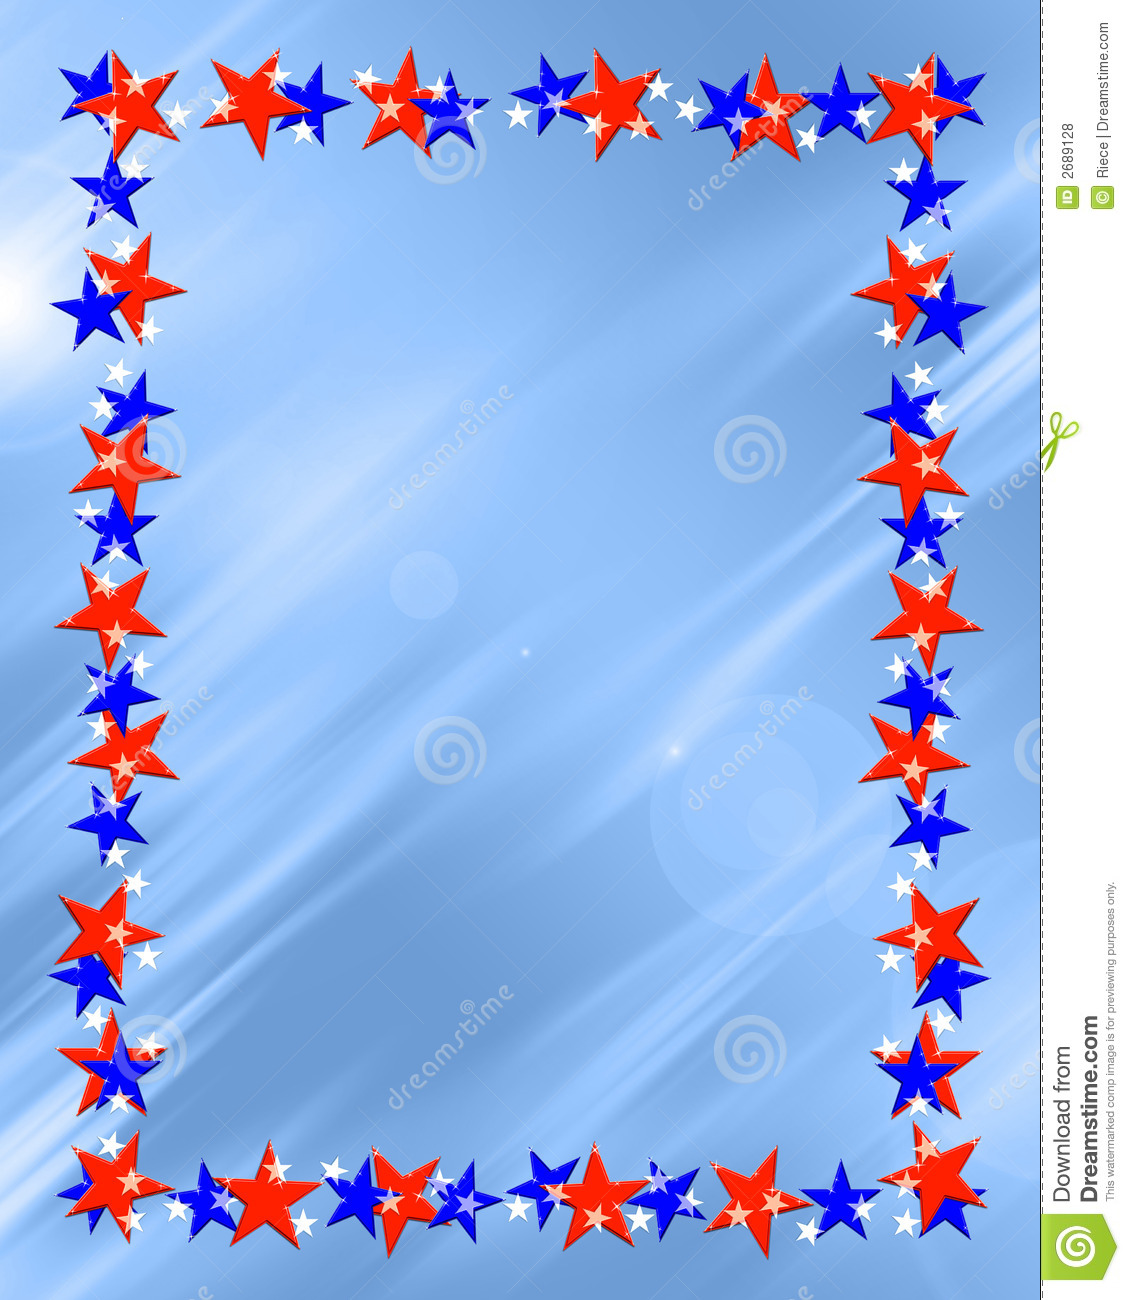 Blue and red patriotic stars and stripes page border frame design - Blue Stars Frames And Borders Submited Images